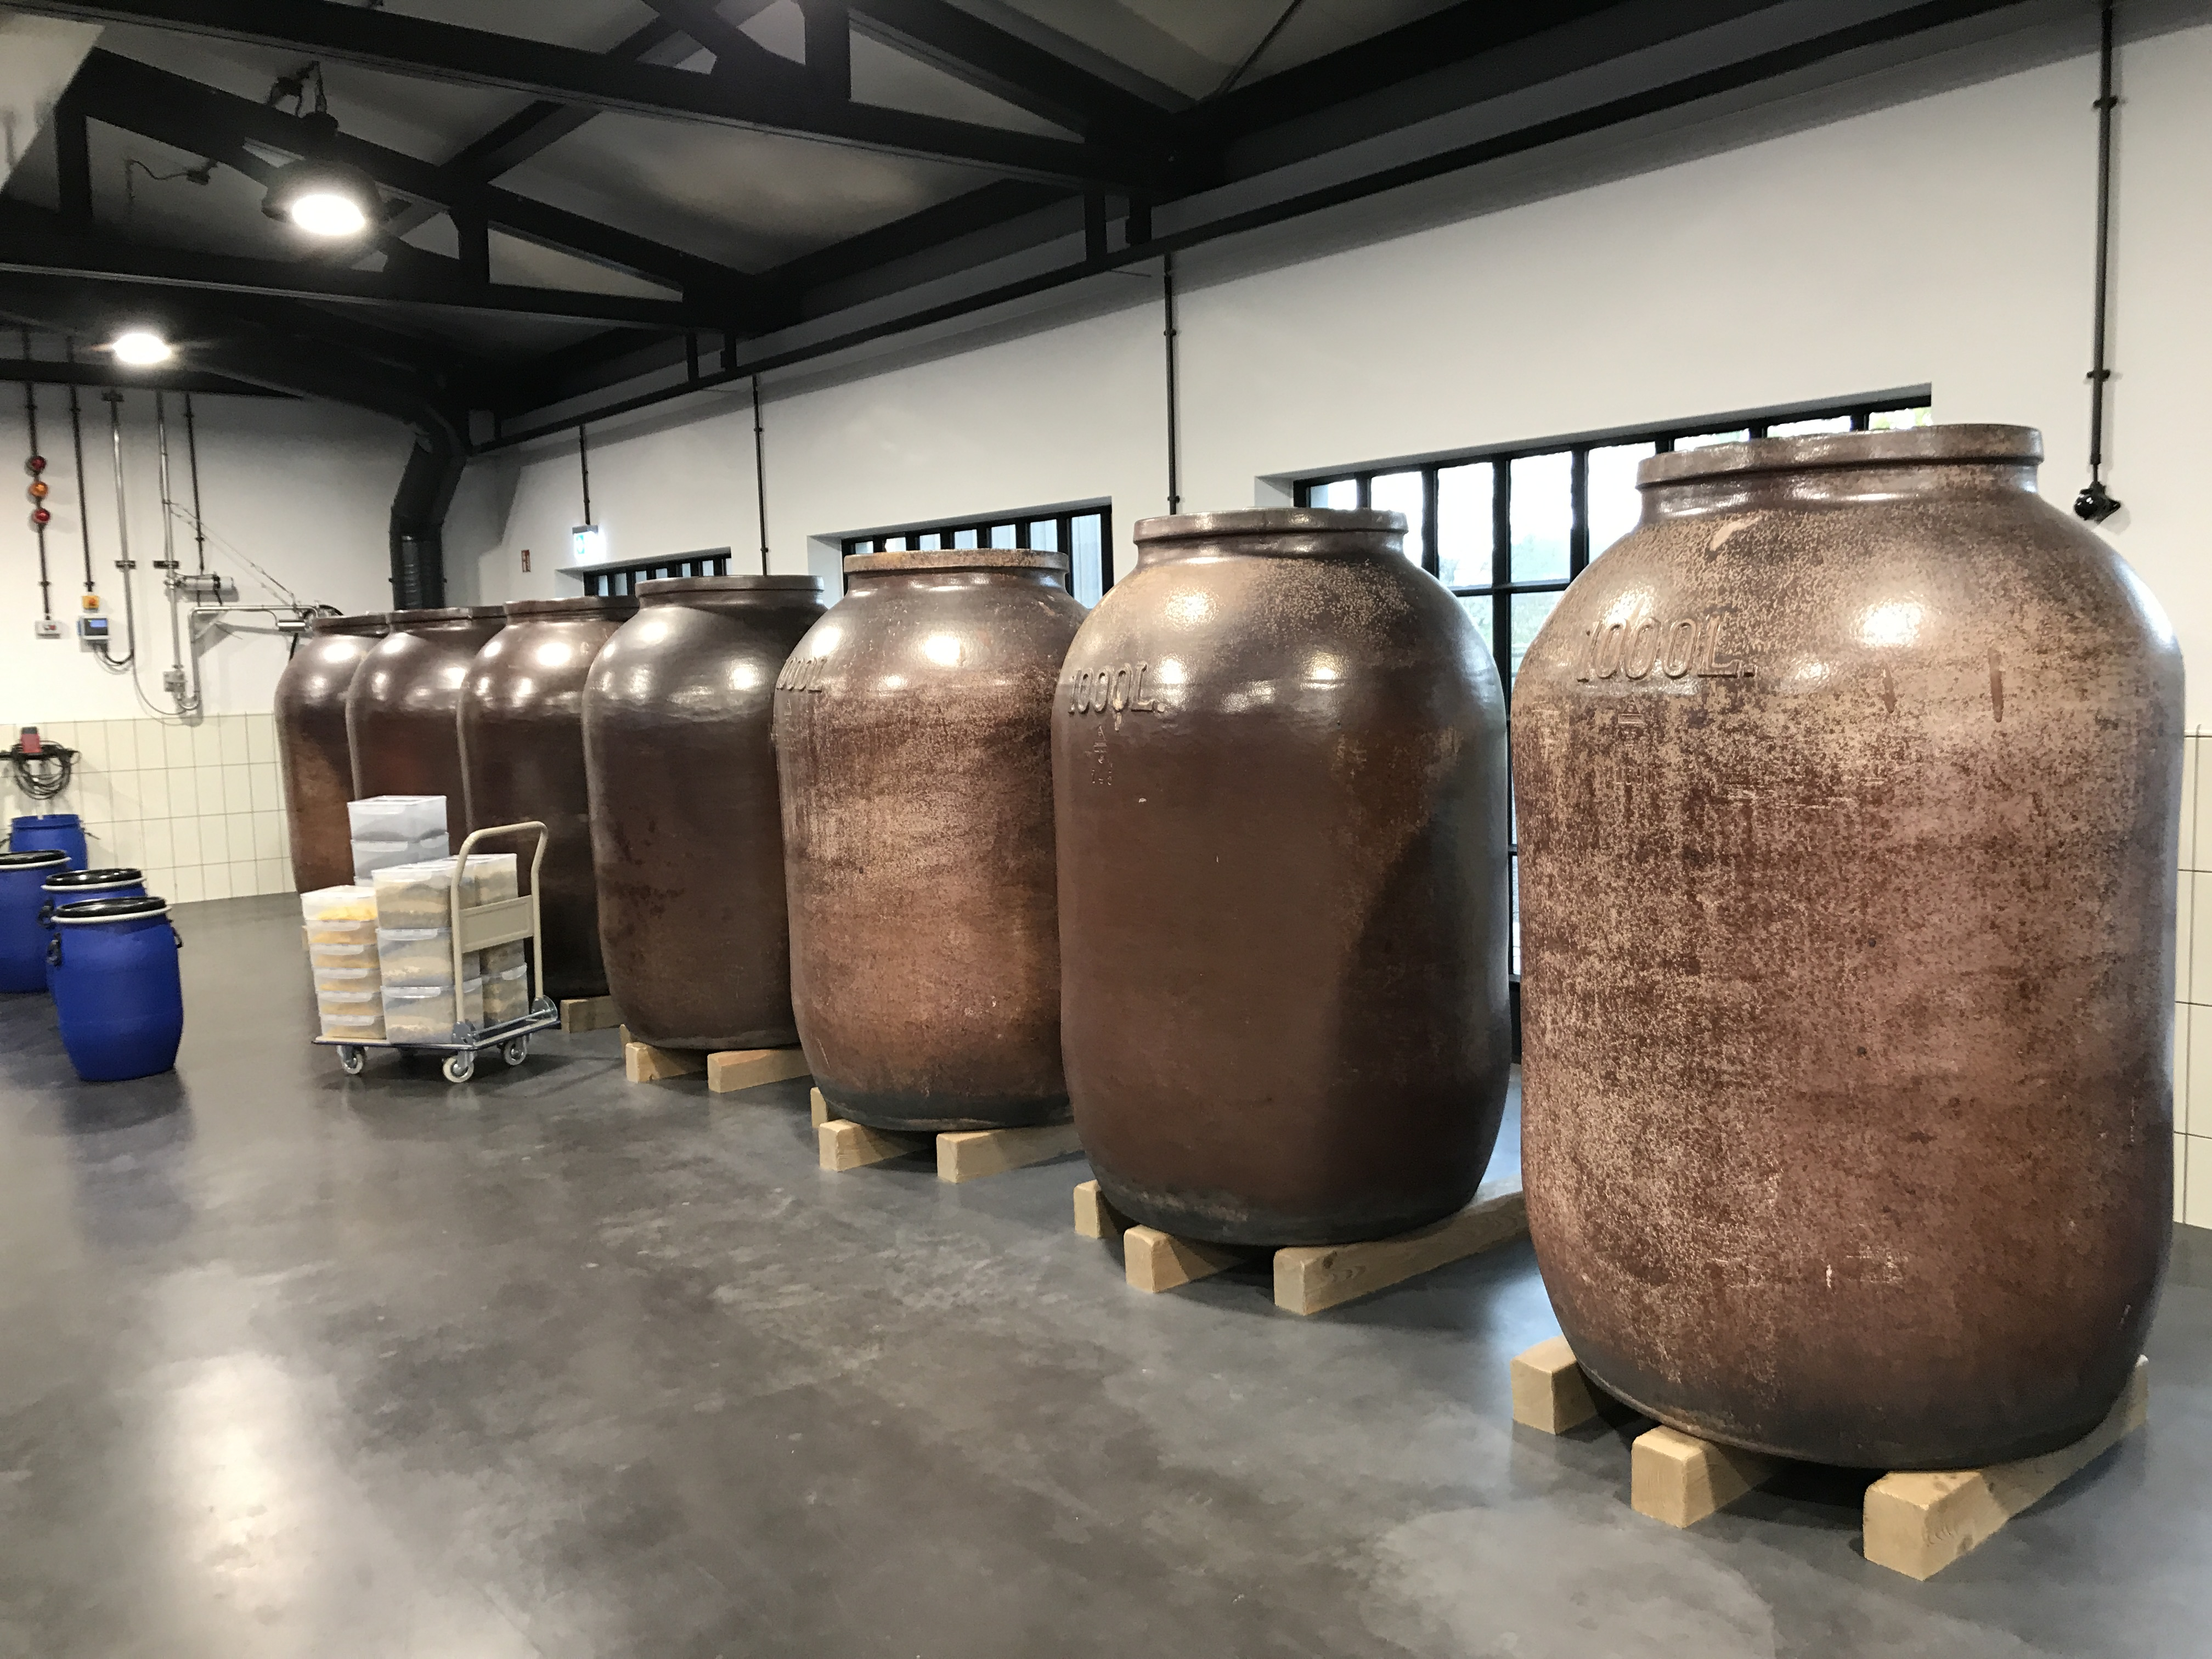 A Visit to the Monkey 47 Distillery in Germany's Black Forest